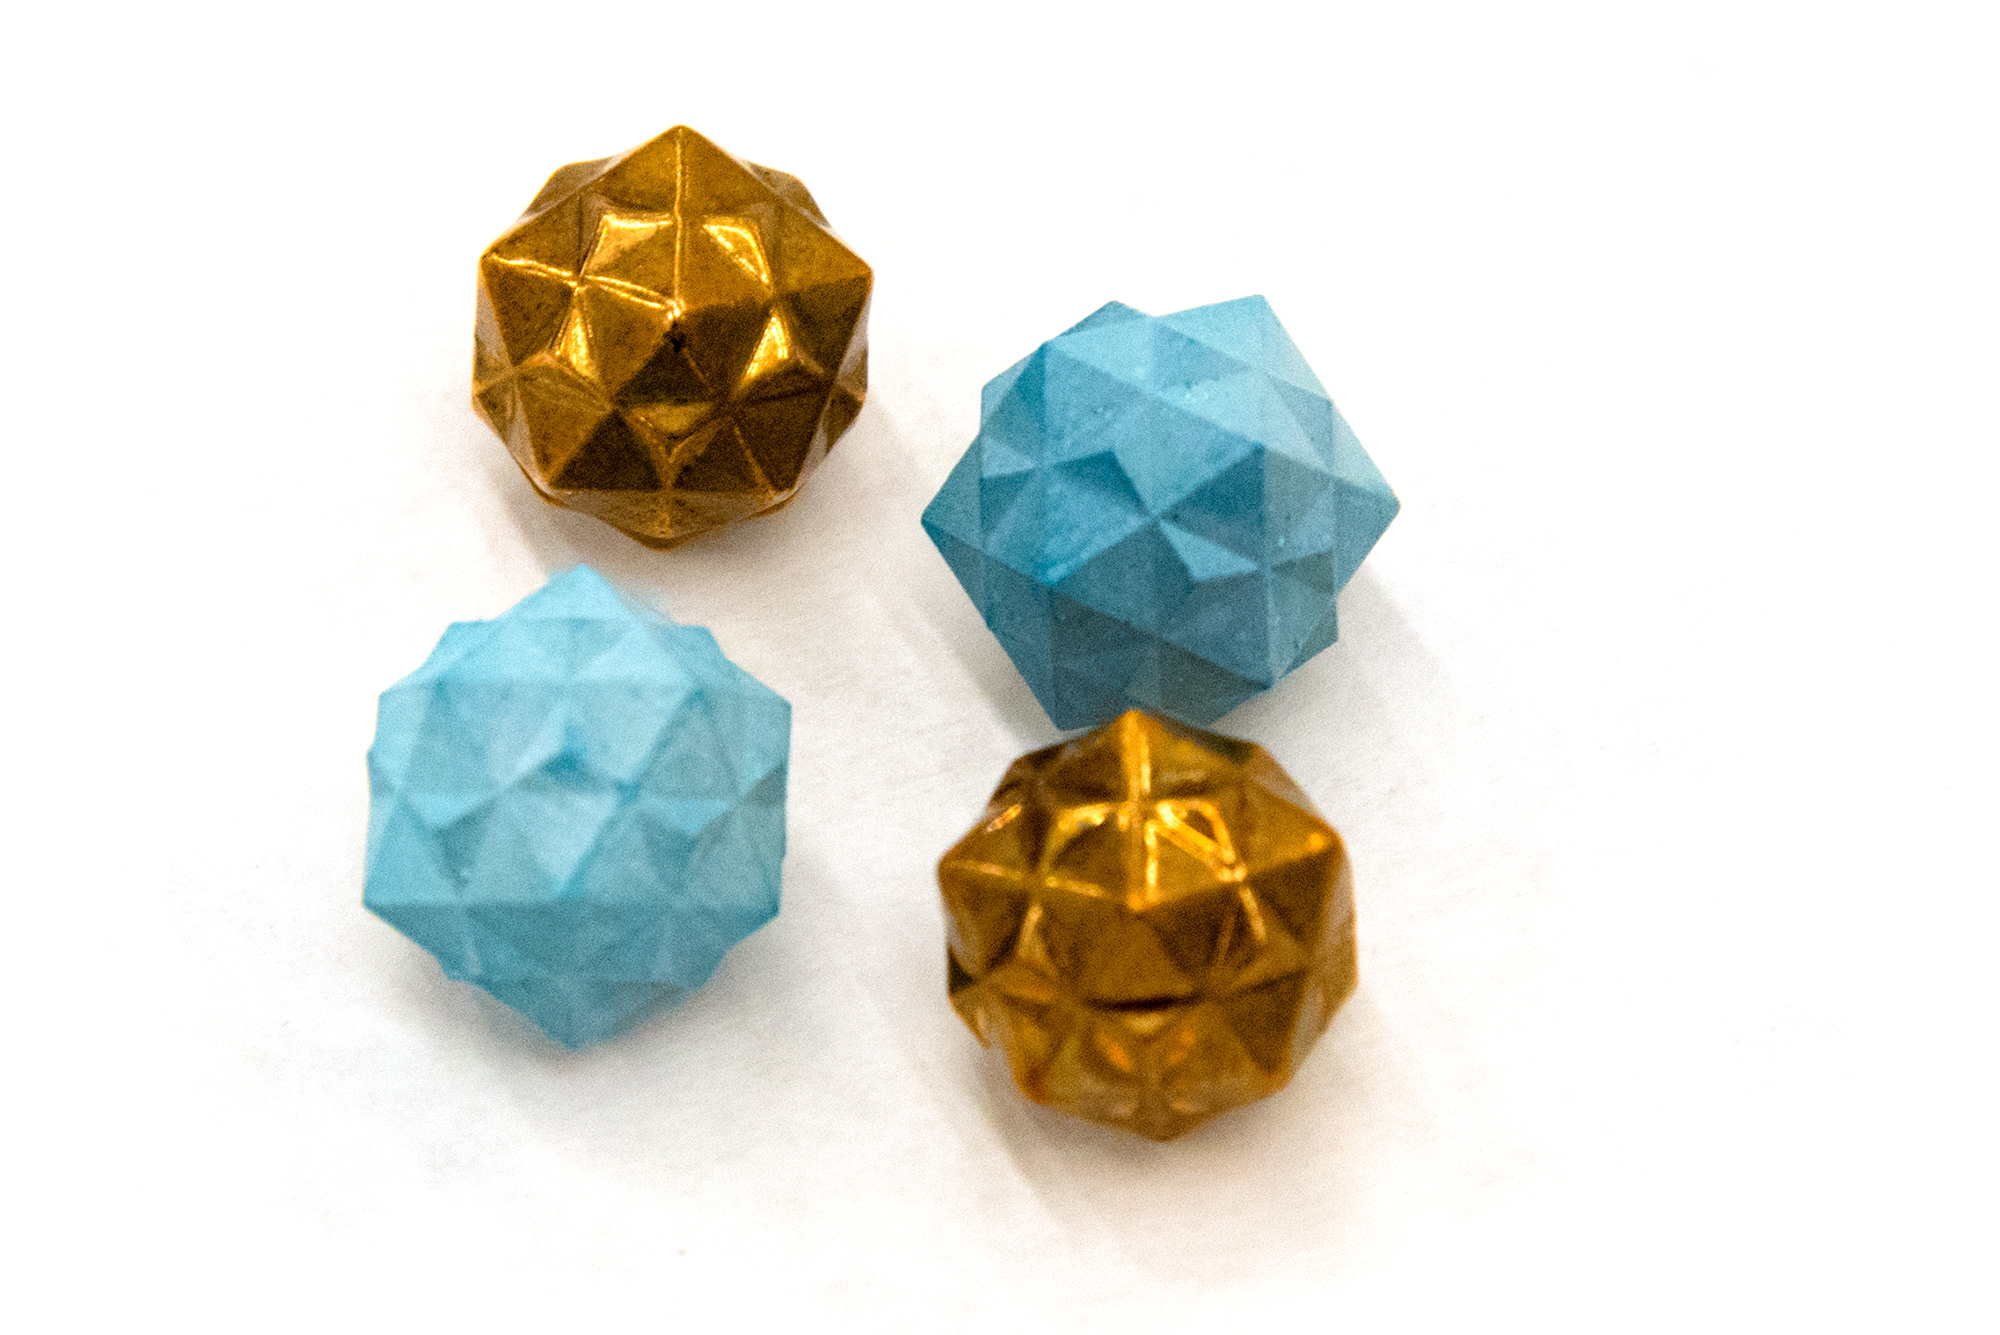 geometrical shapes in wax and metal